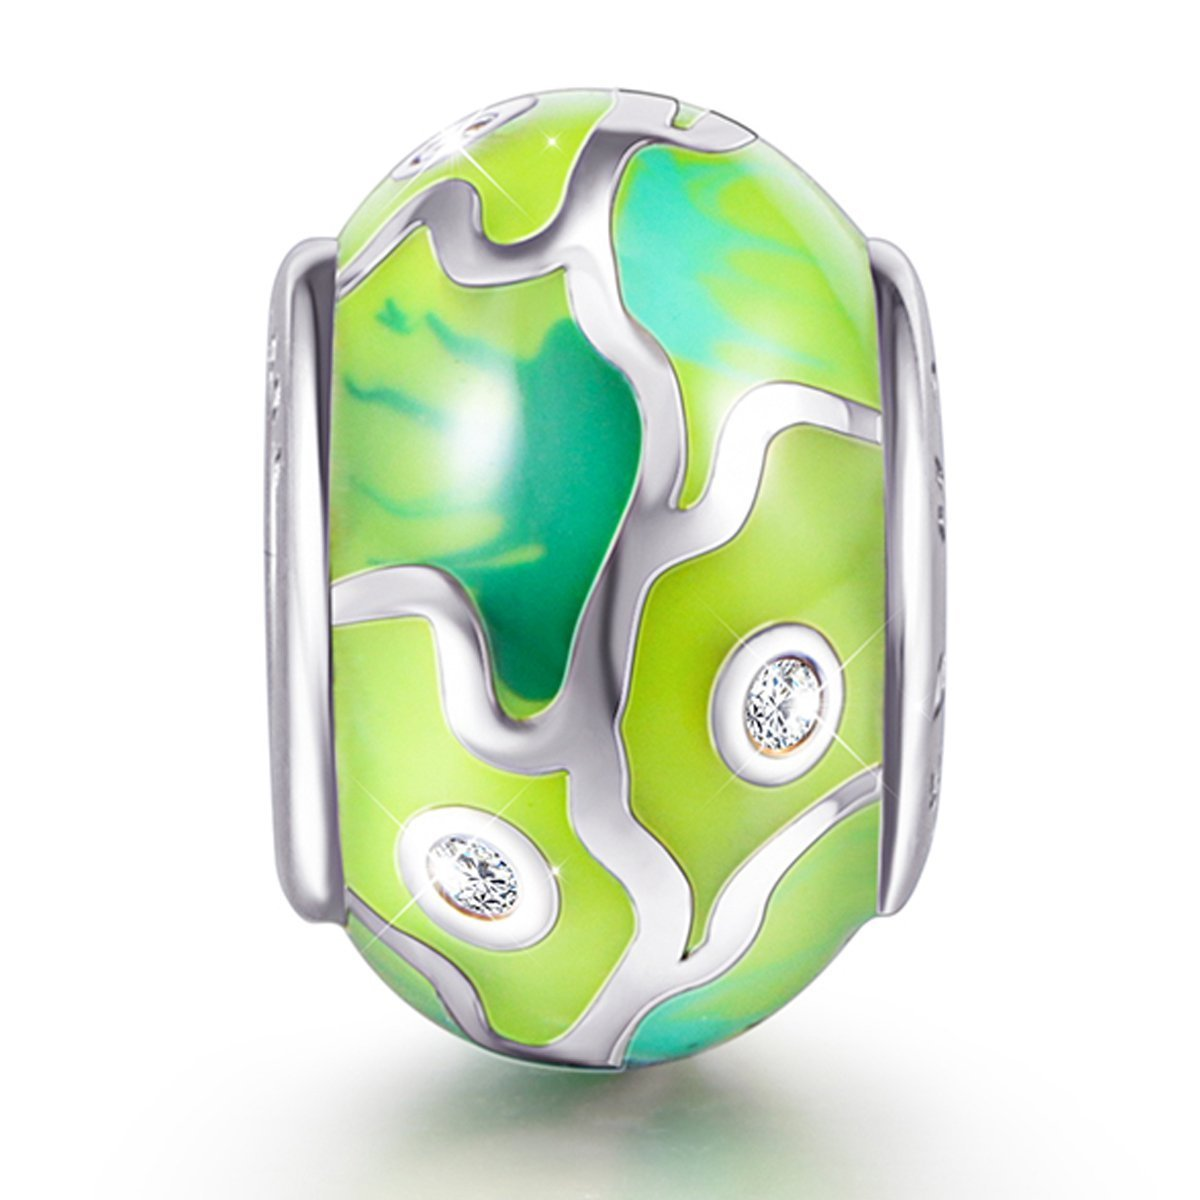 925 Sterling Silver Abstract Painting Craft Charm for Bracelet and Necklace - onlyone